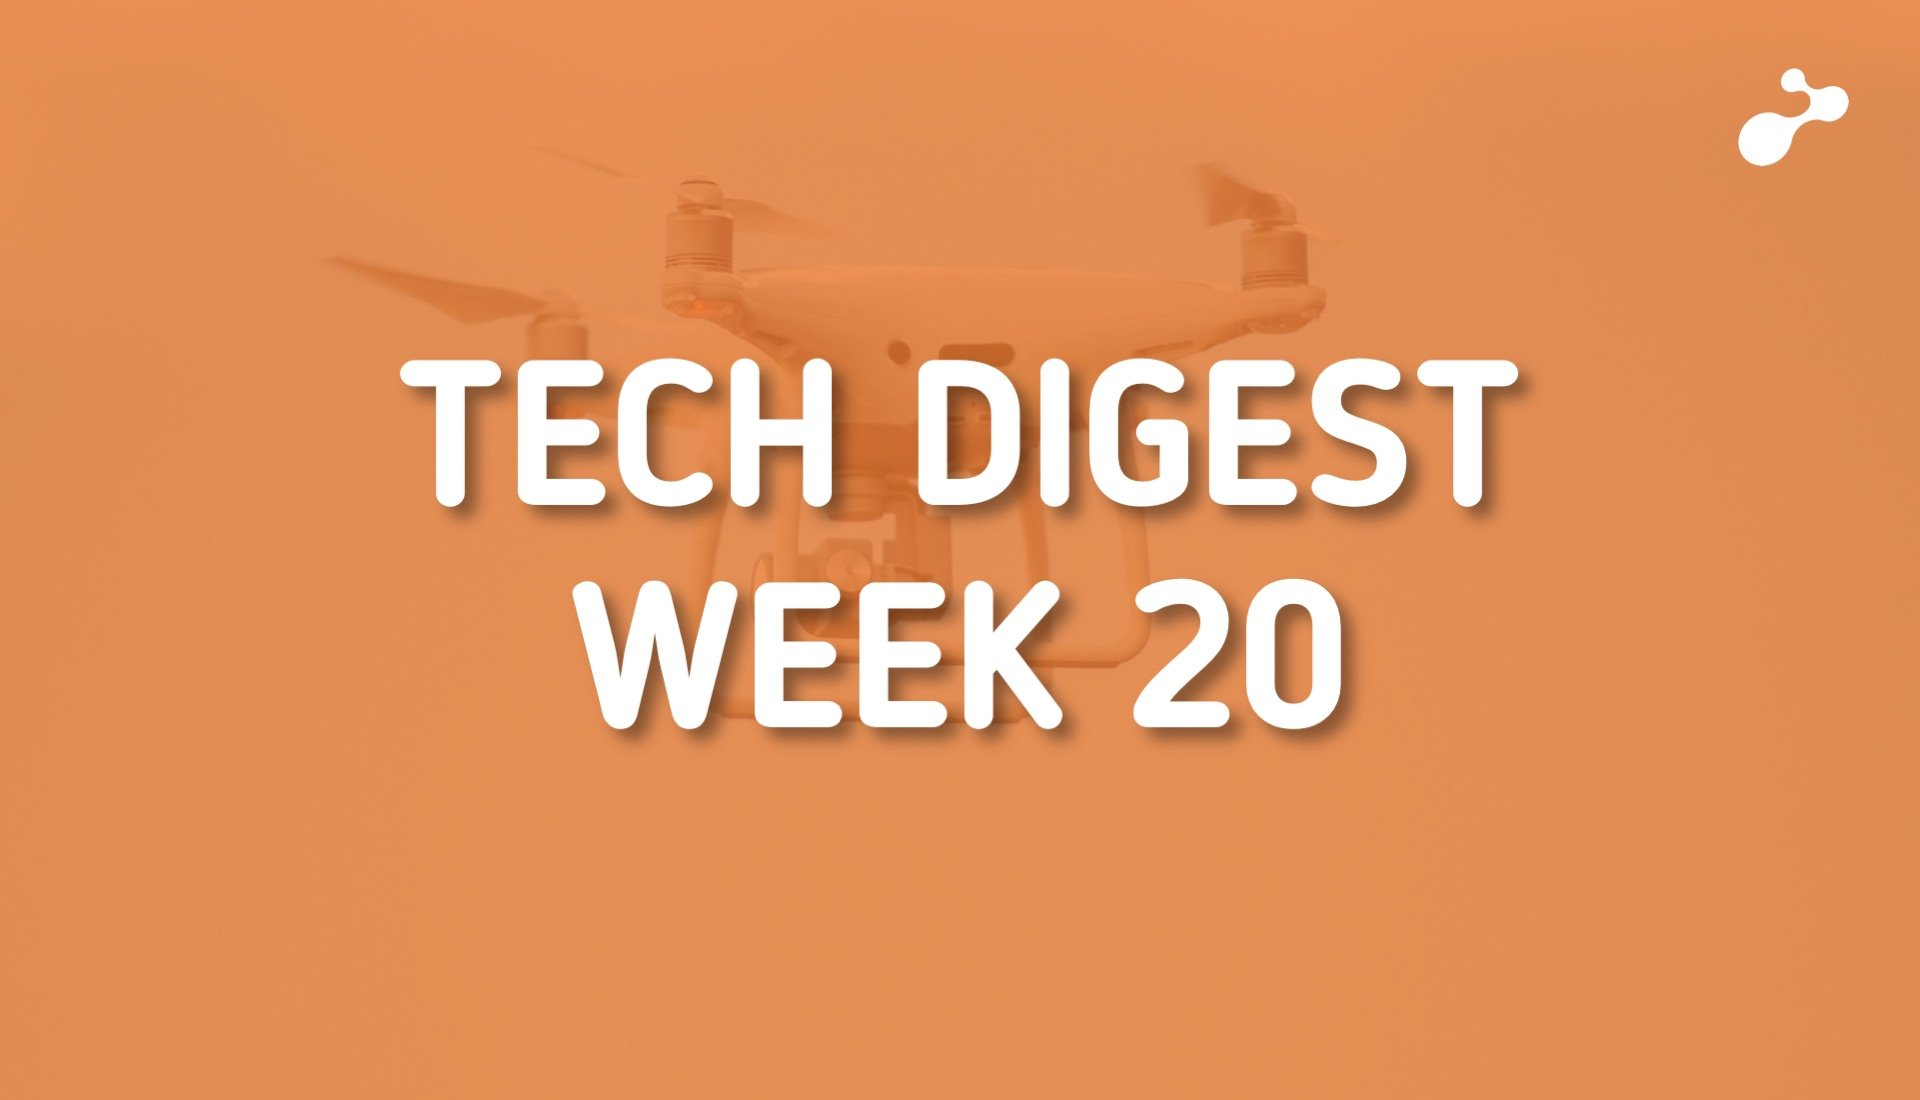 Top global technology trends to watch this week - Week 20, 2019